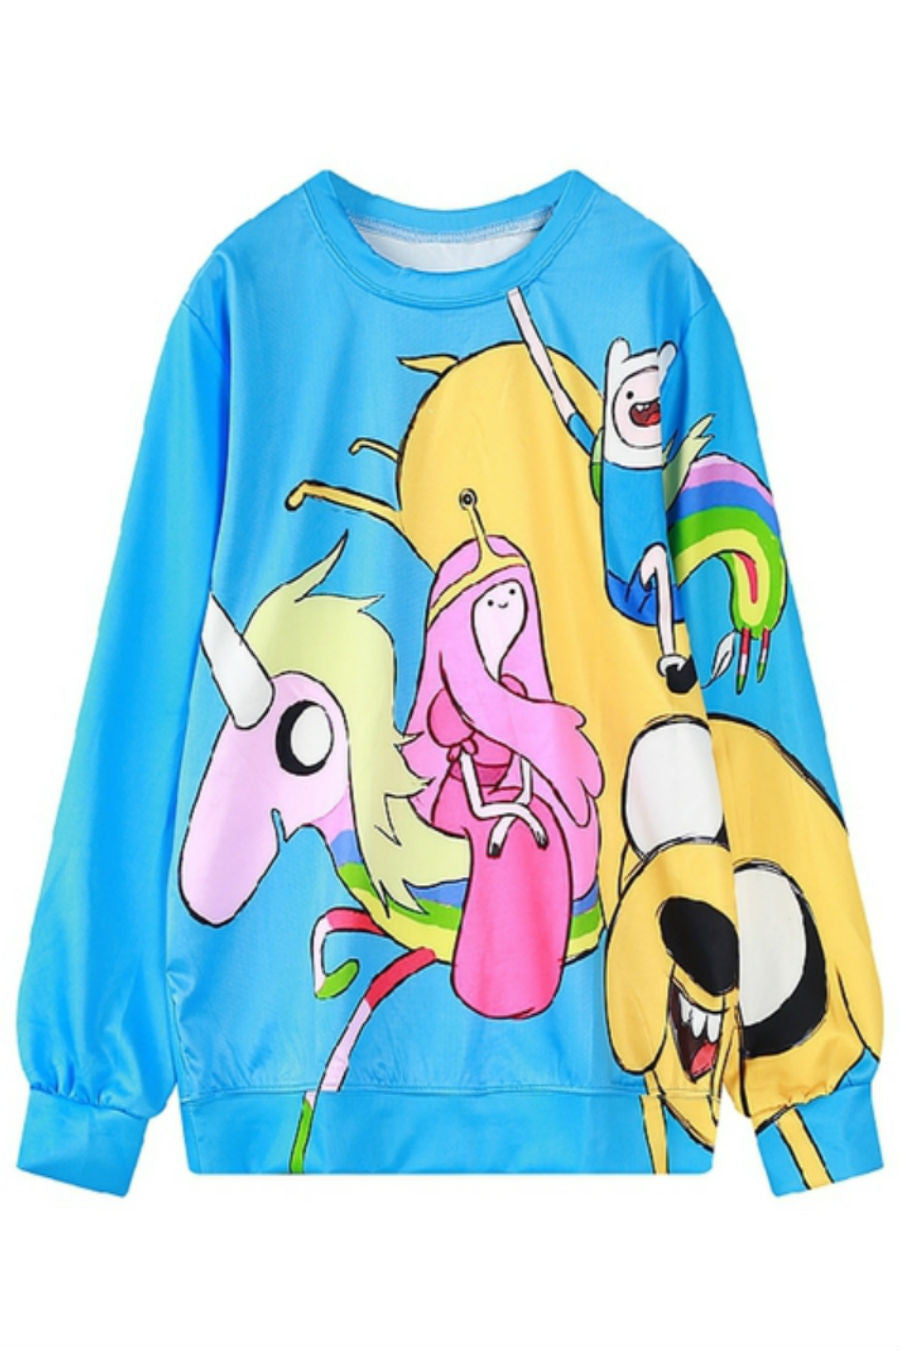 Blue Cartoon Print Sweater